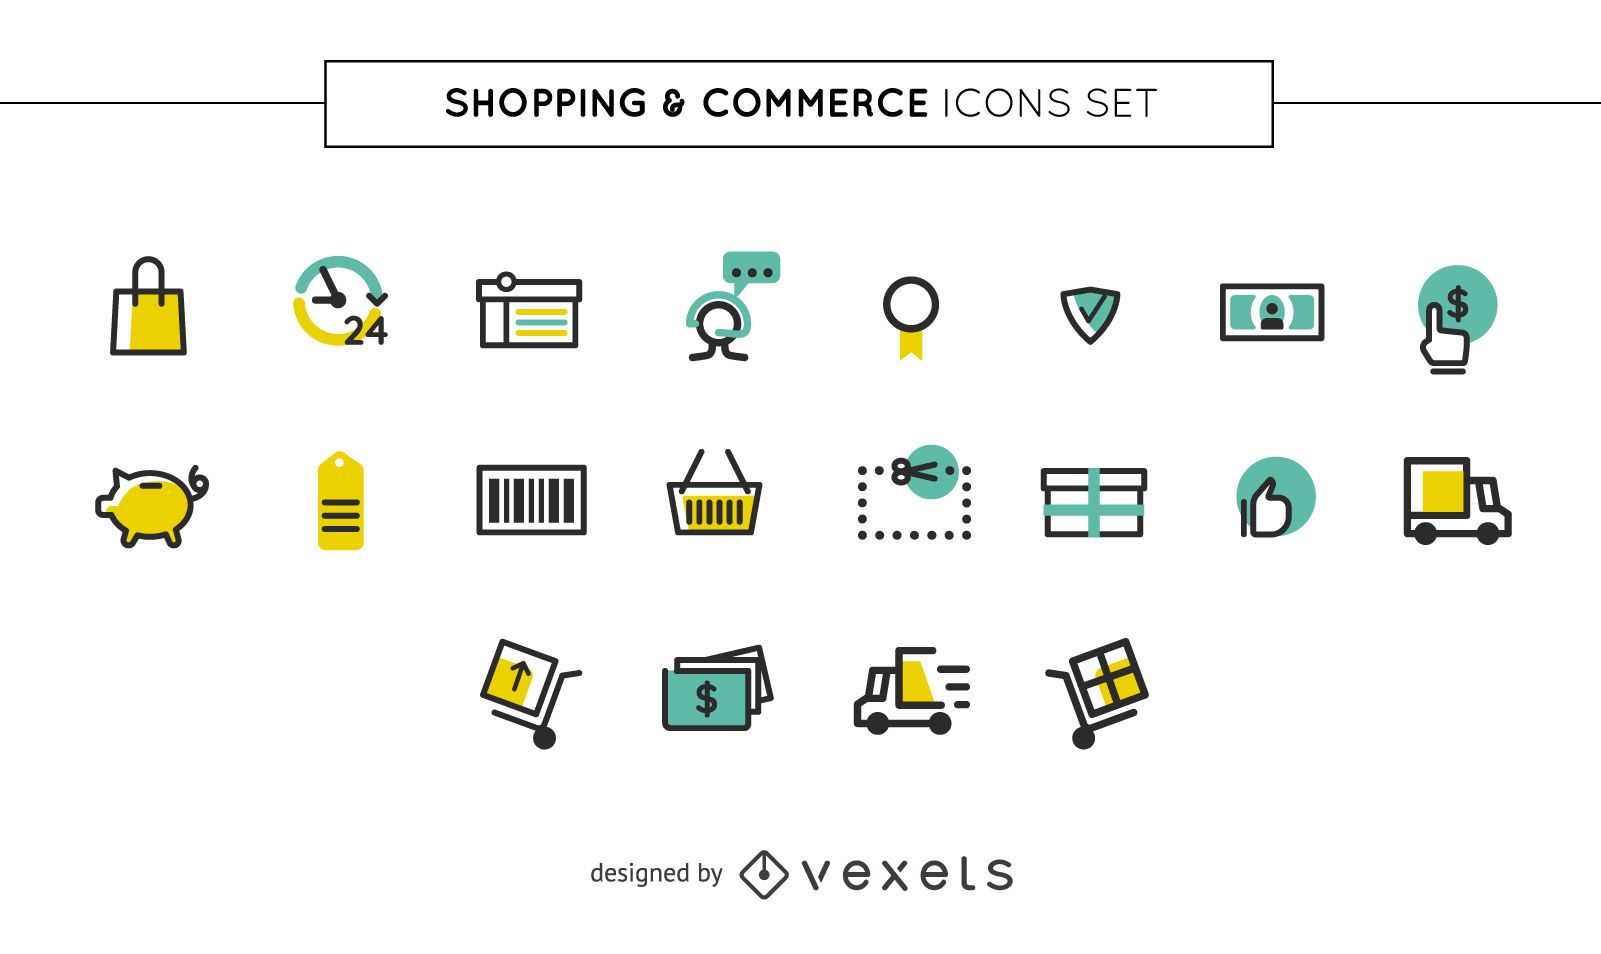 Shopping and commerce icons set